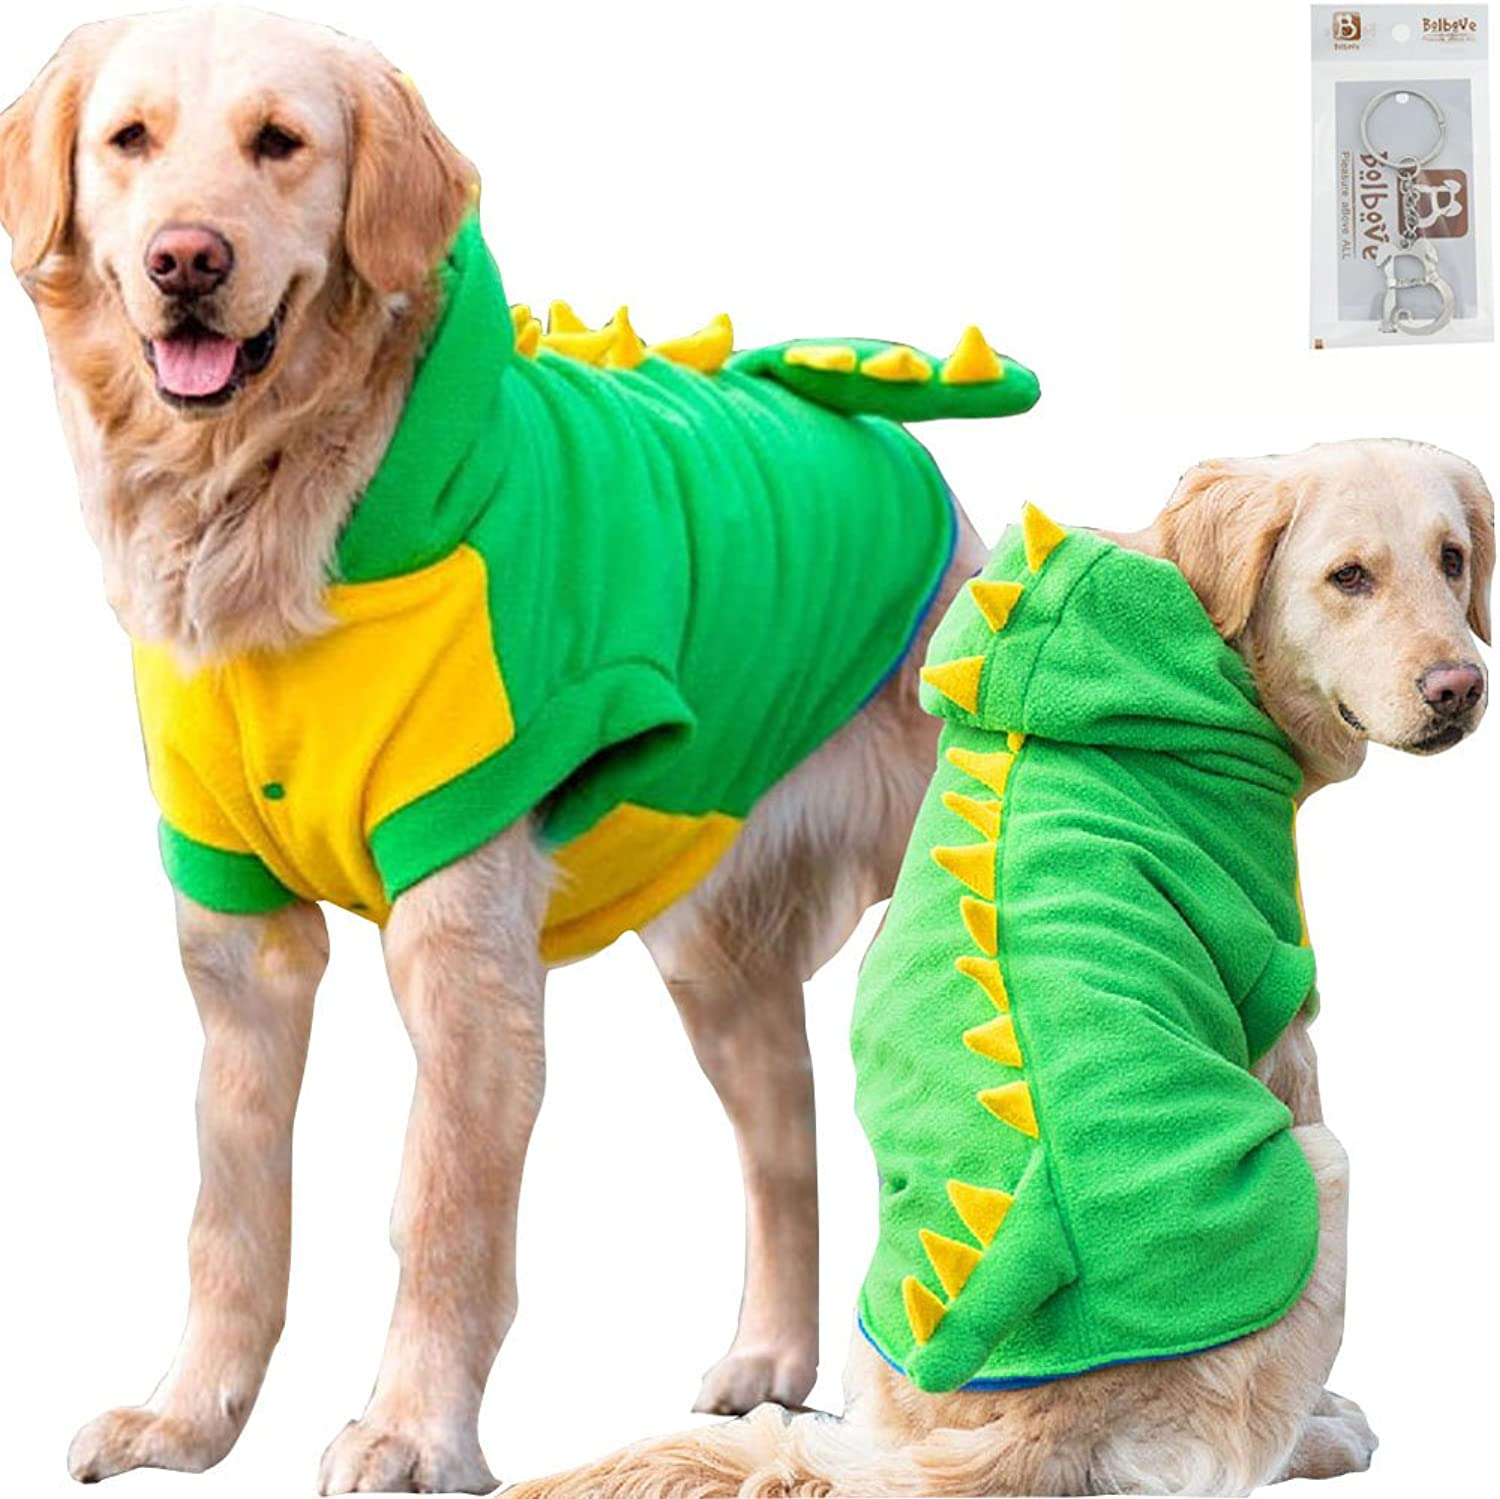 Bolbove Large Dog Fleece Outfit Dinosaur Costume with Hood for Big Dogs Cold Weather Coats Large Dogs Party Apparel (4XL)